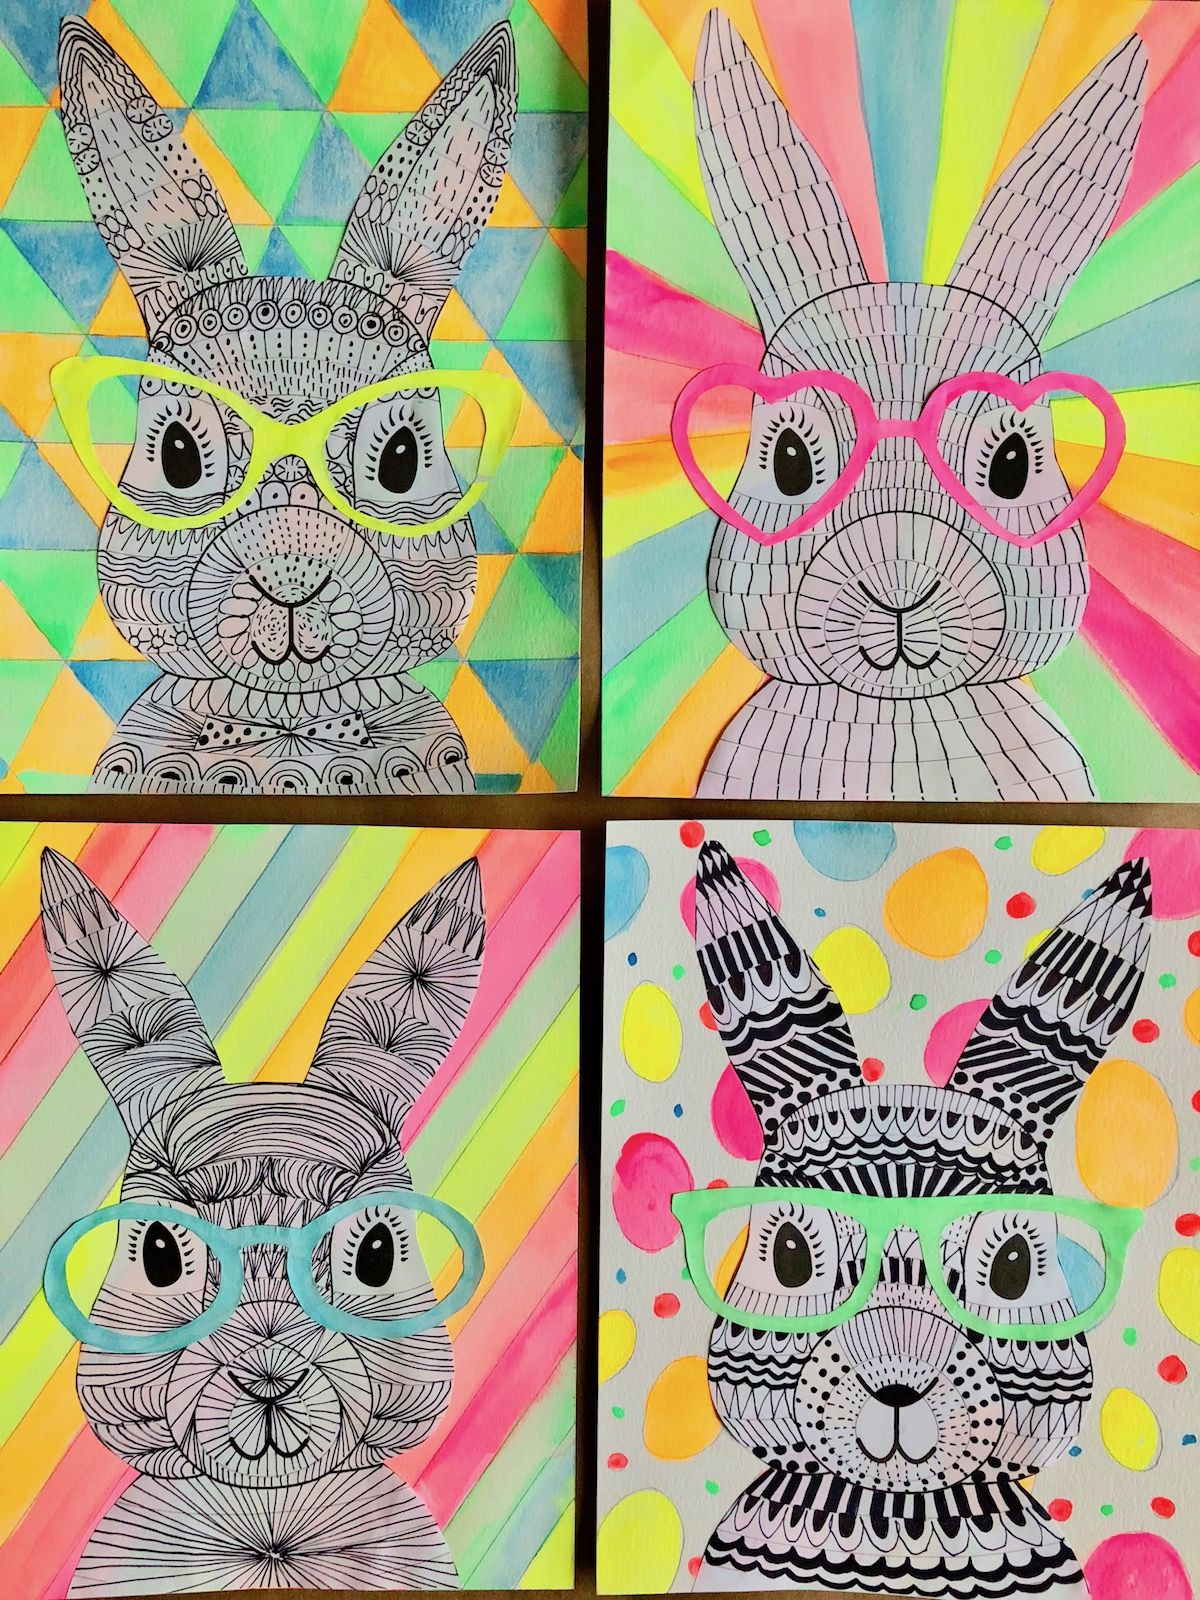 Funky Easter Bunnies Zentangle Drawing Artforkids